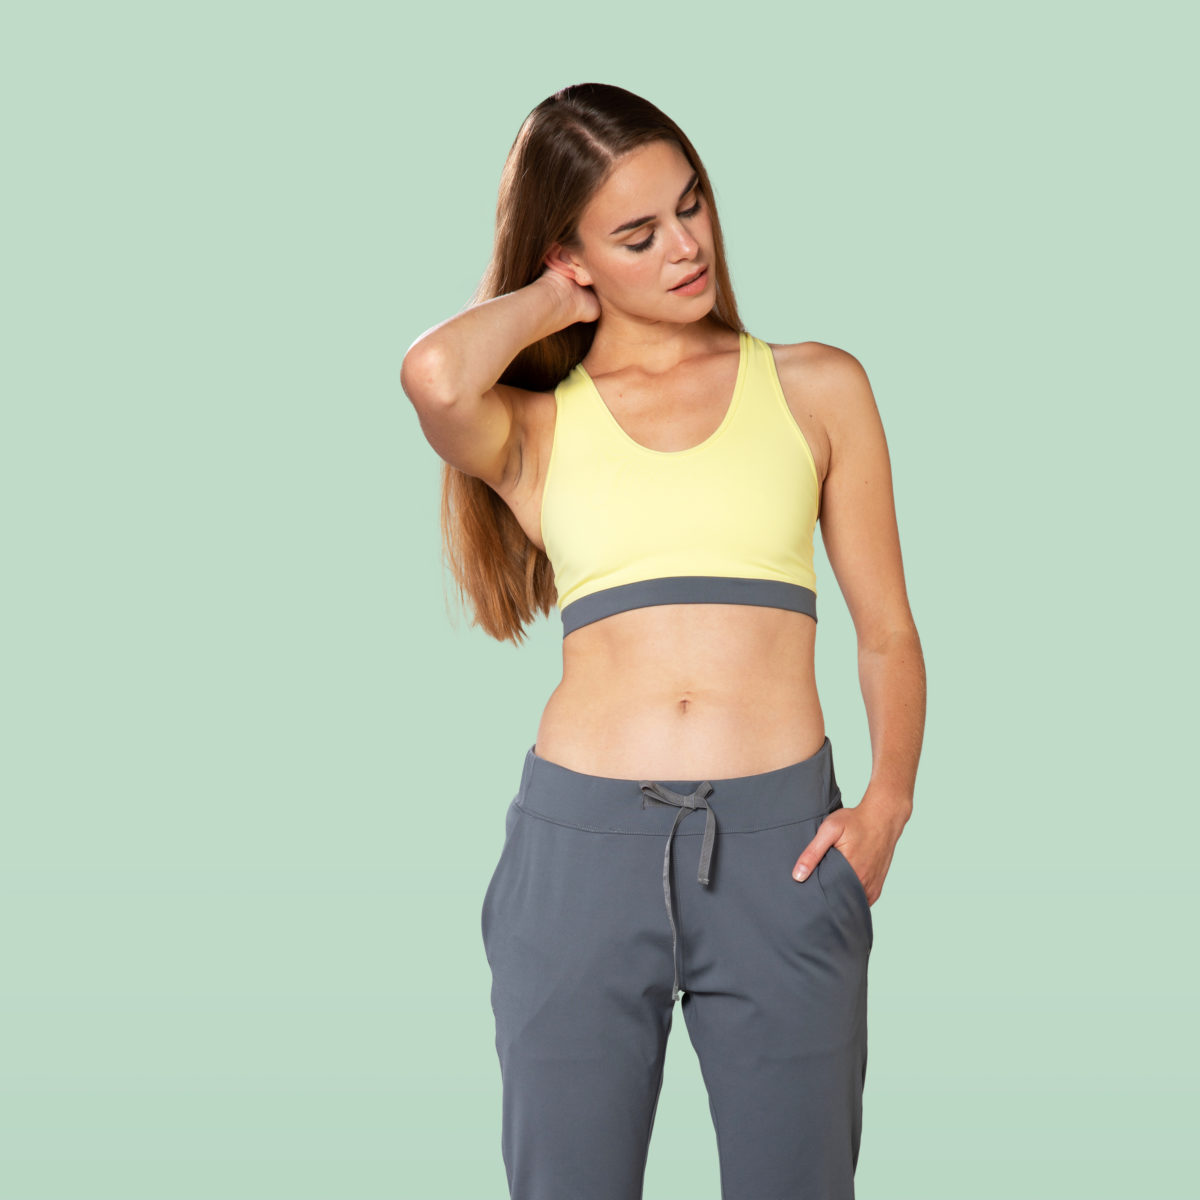 yellow sports bra front view